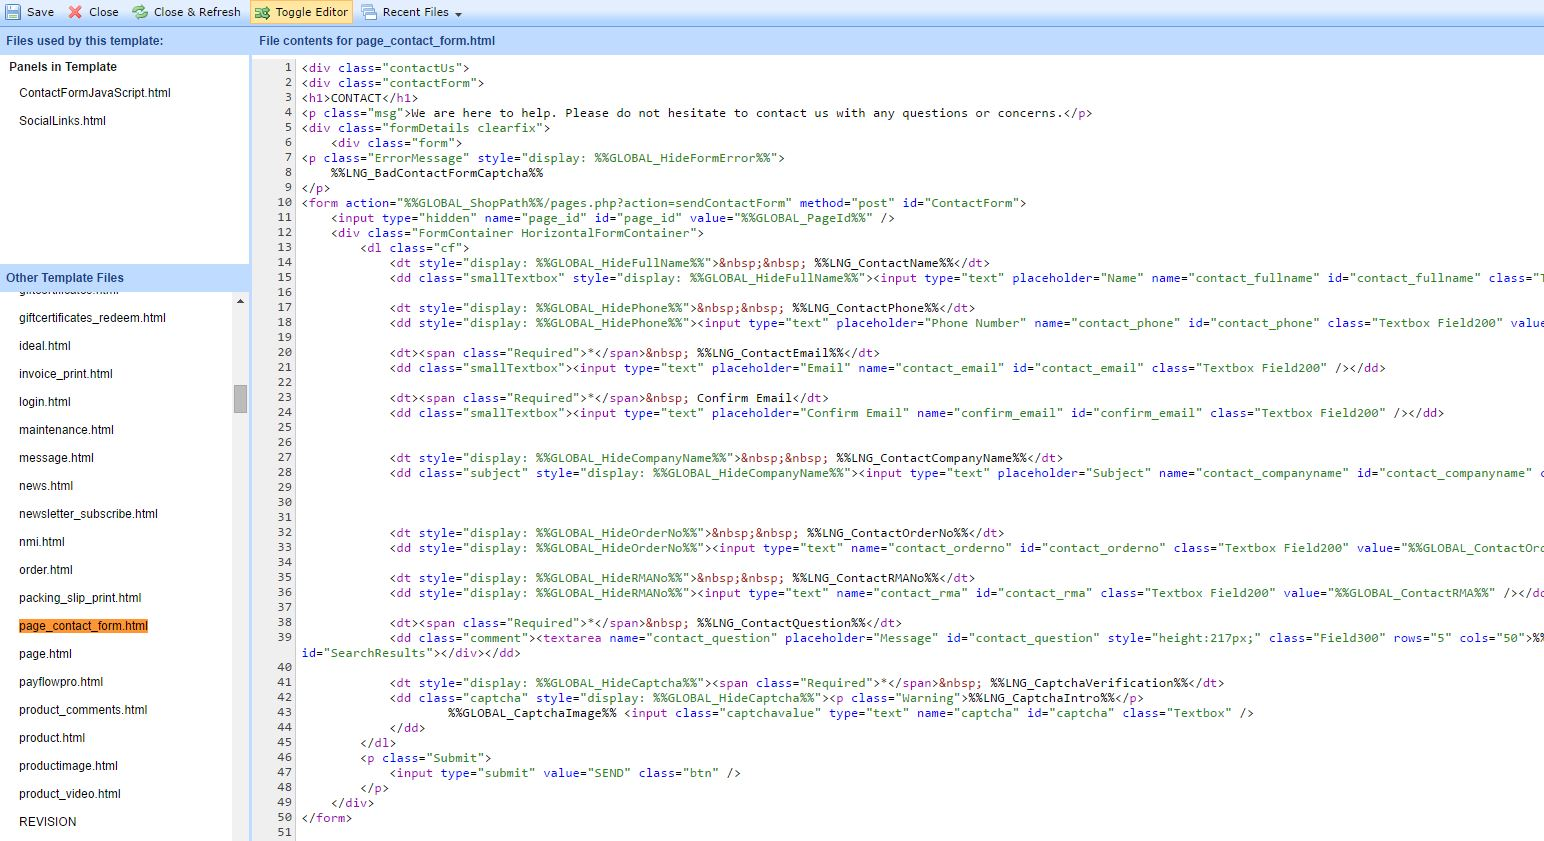 Step 1 - Add code in page_contact_form.html